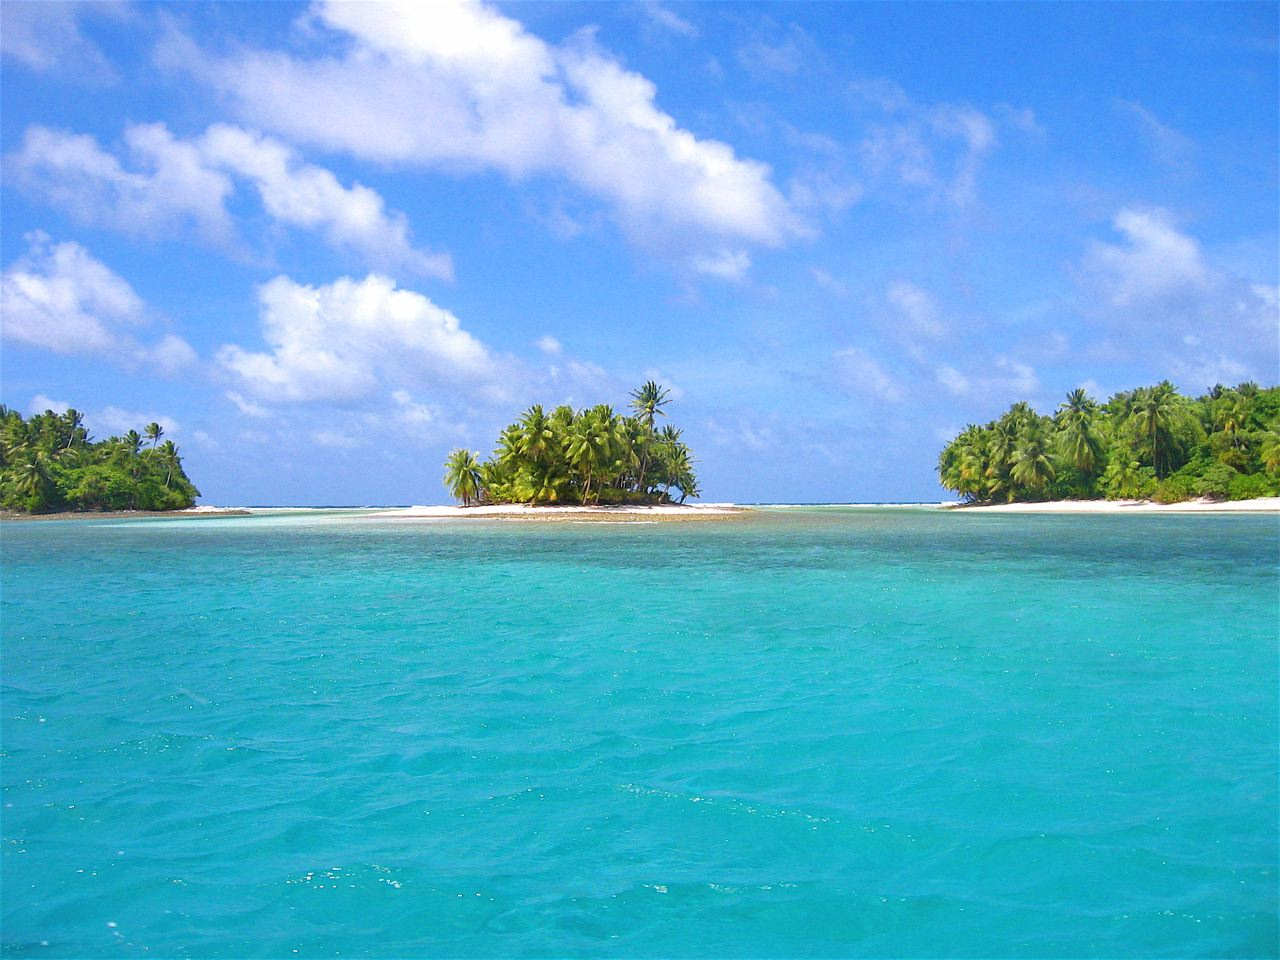 Ralik, Marshall Islands